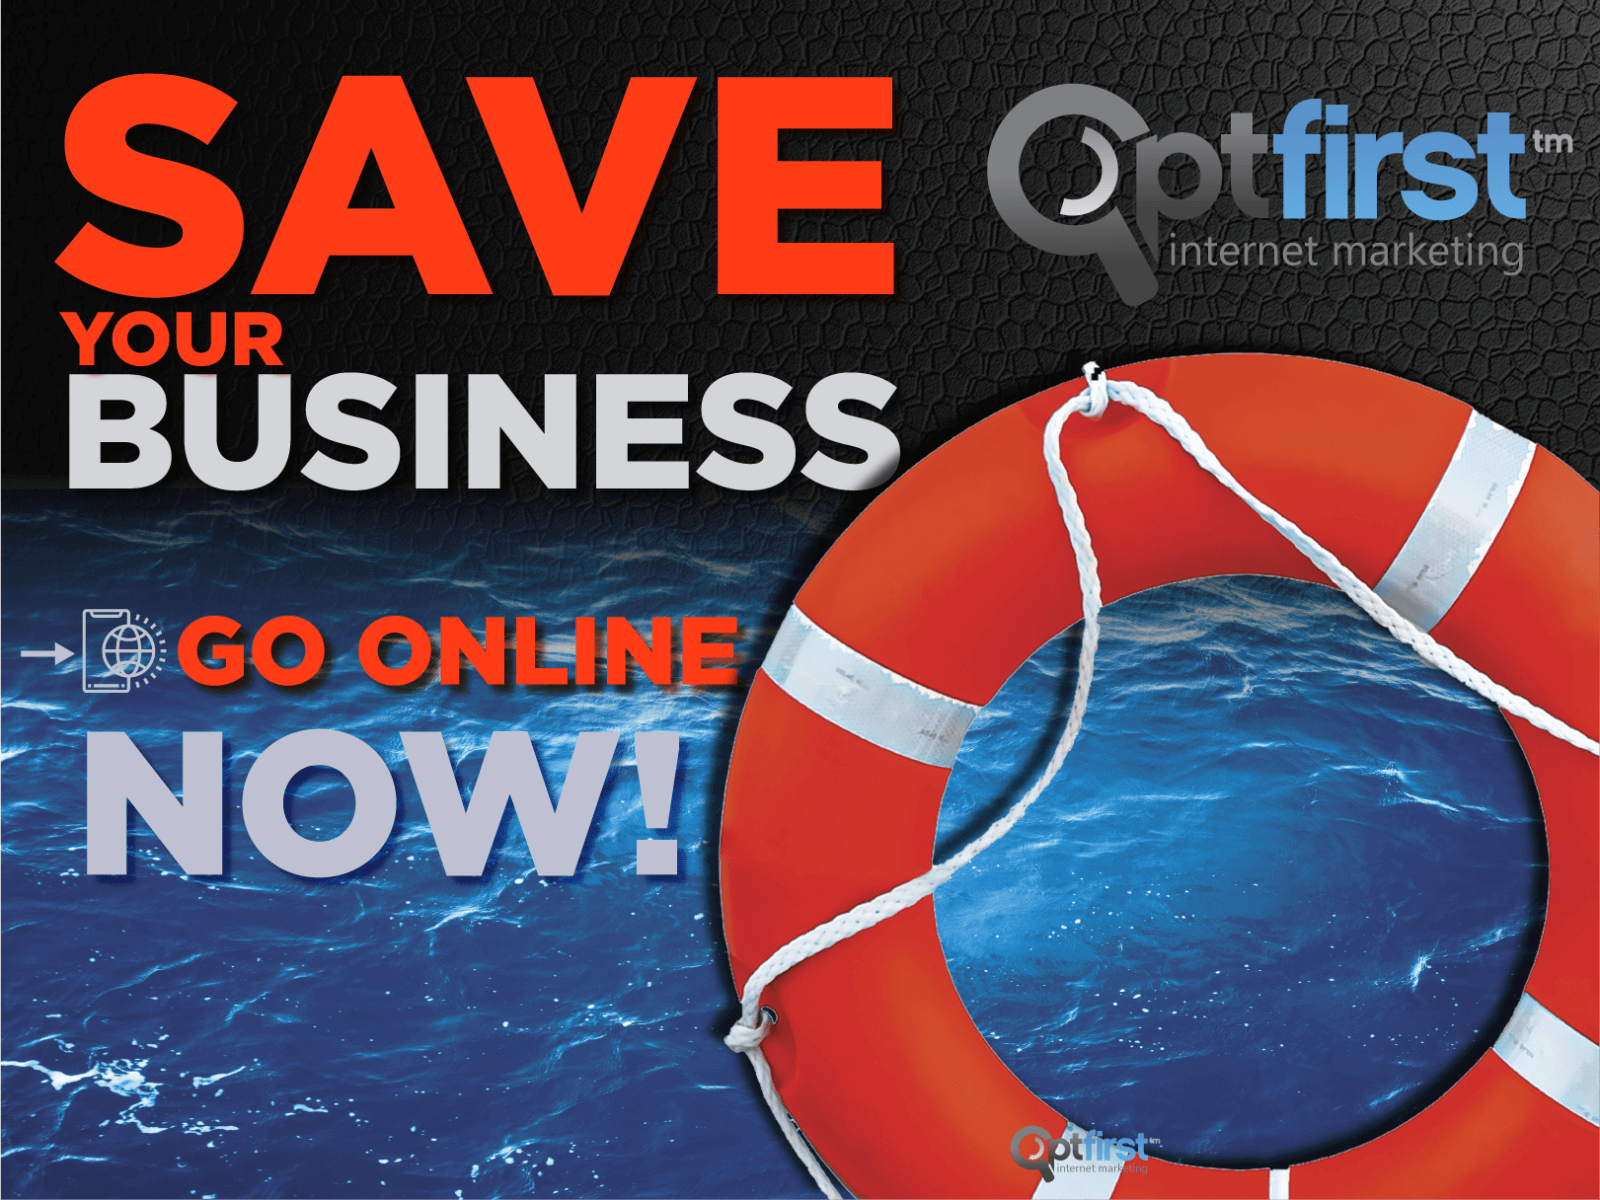 Save your business, Go Online Now!